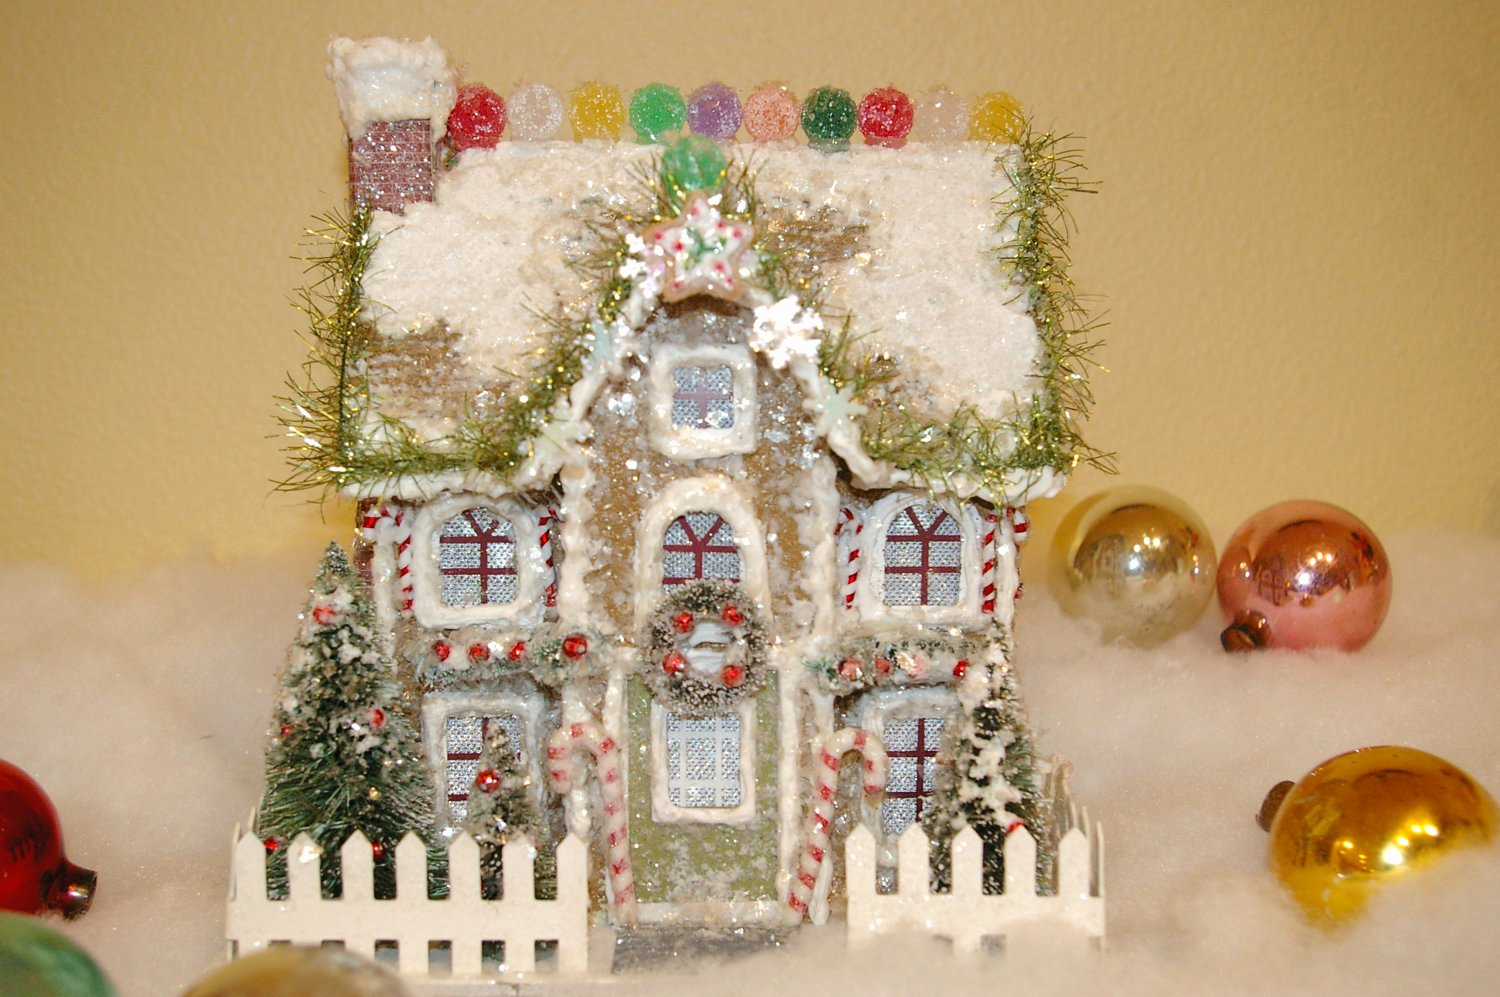 Cardboard Gingerbread House Best Of Paper Mache Gingerbread House by Kariegrogan On Etsy